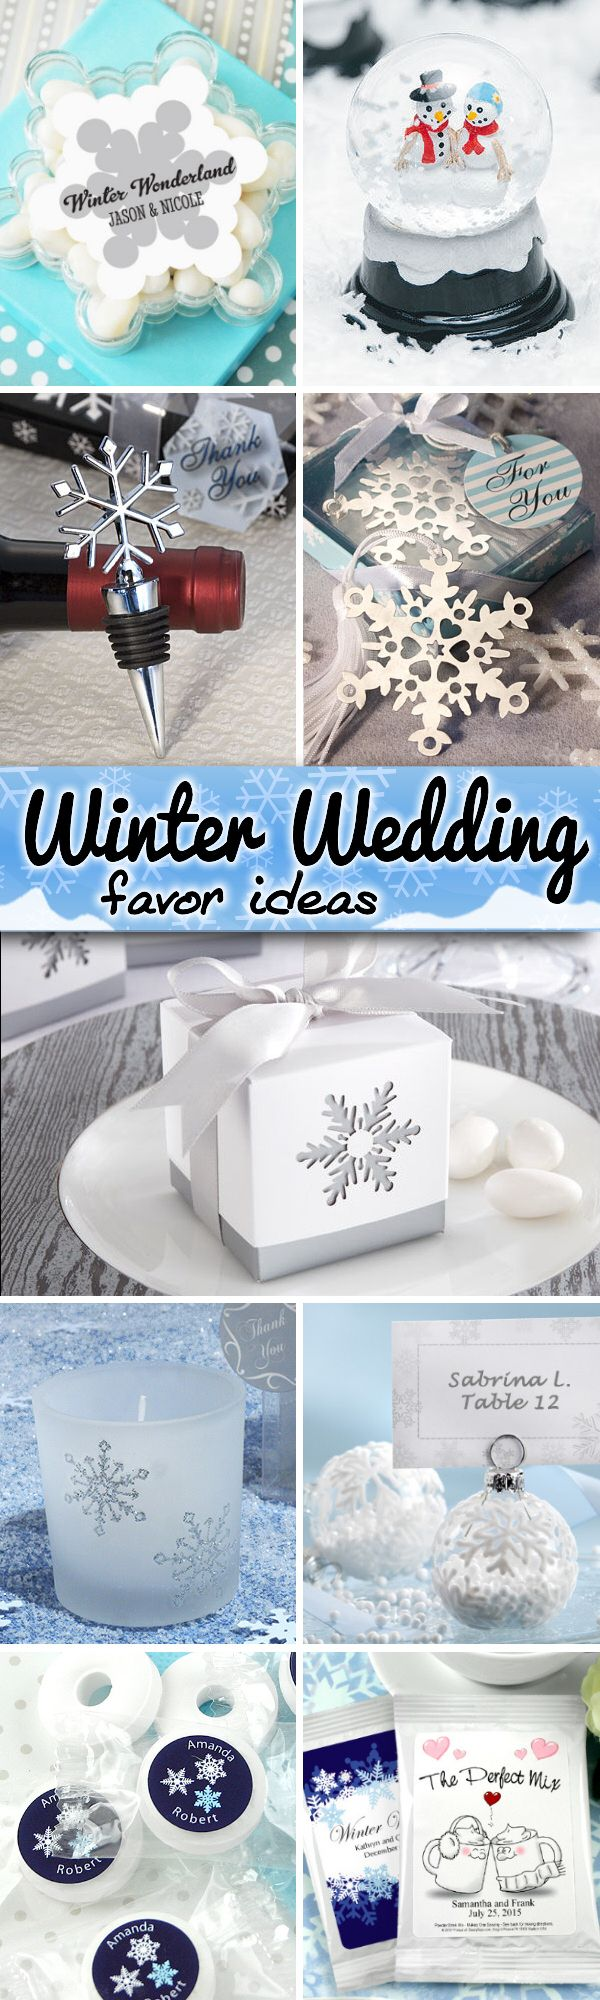 75 Fun and Festive Winter Wedding Favor Ideas like snowflake bookmarks, snow globes, hot cocoa and more!